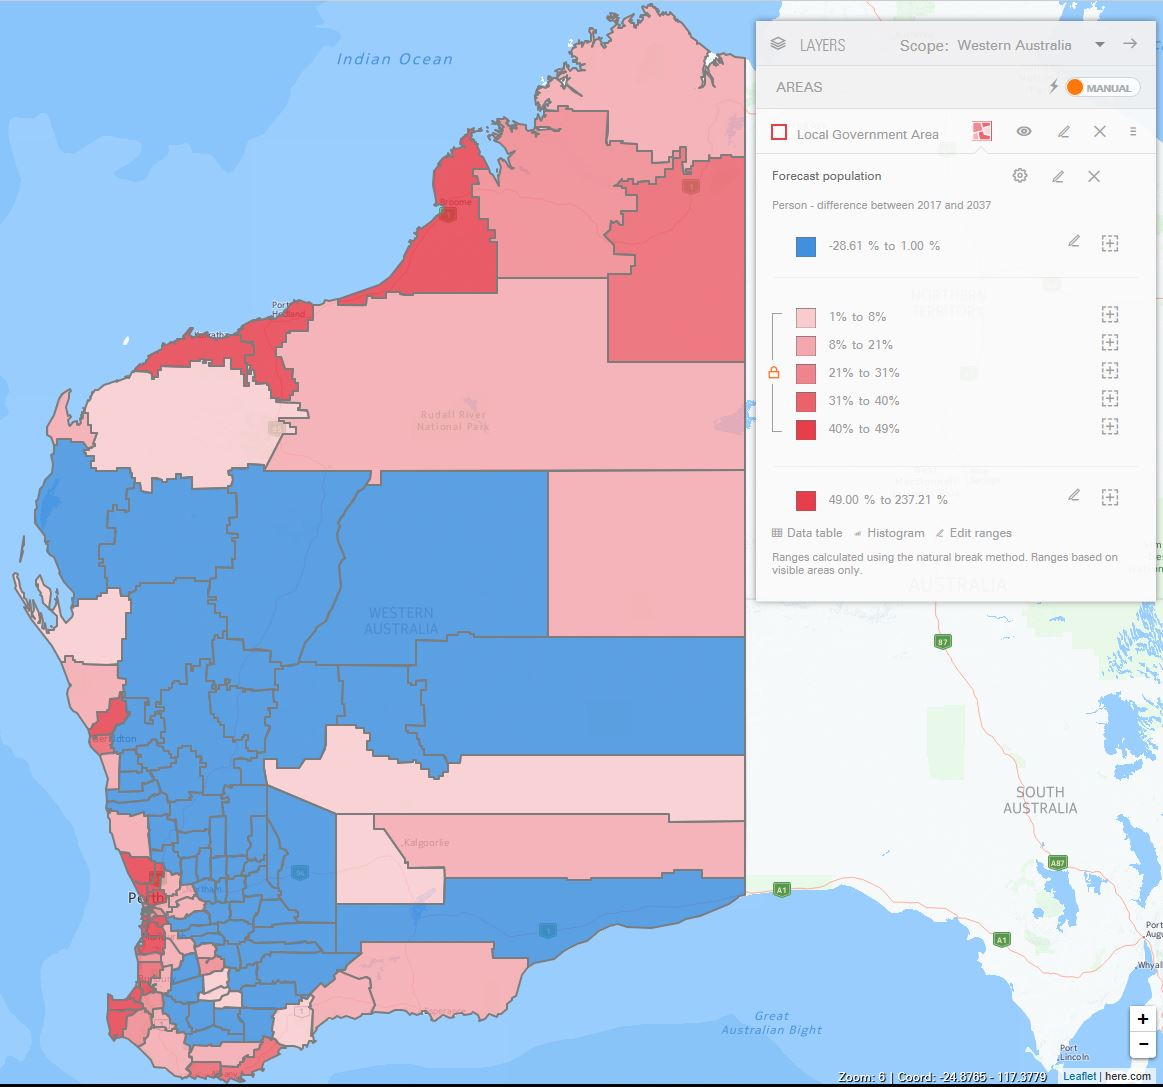 Population change, Local Government Areas in Western Australia, 2017-2037